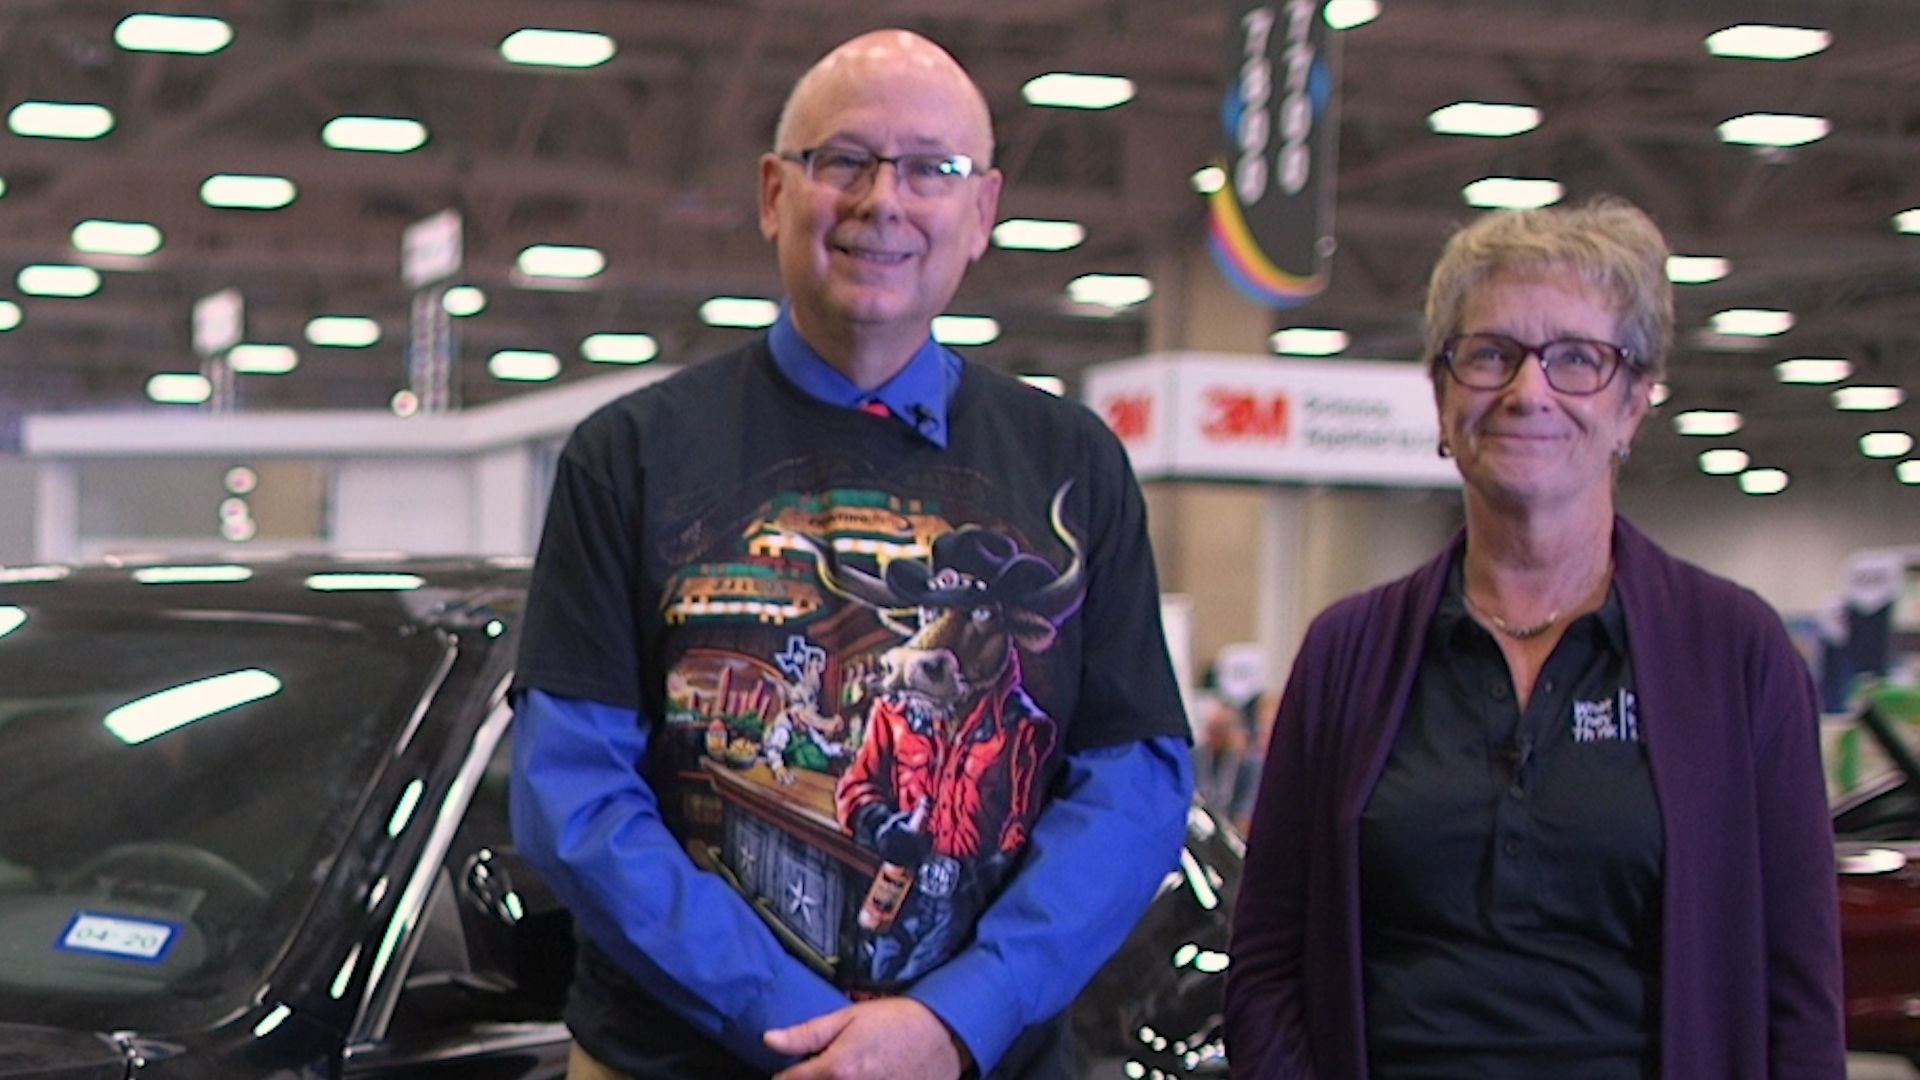 Car Wrap Competition Drives Attendee Interest at PRINTING United